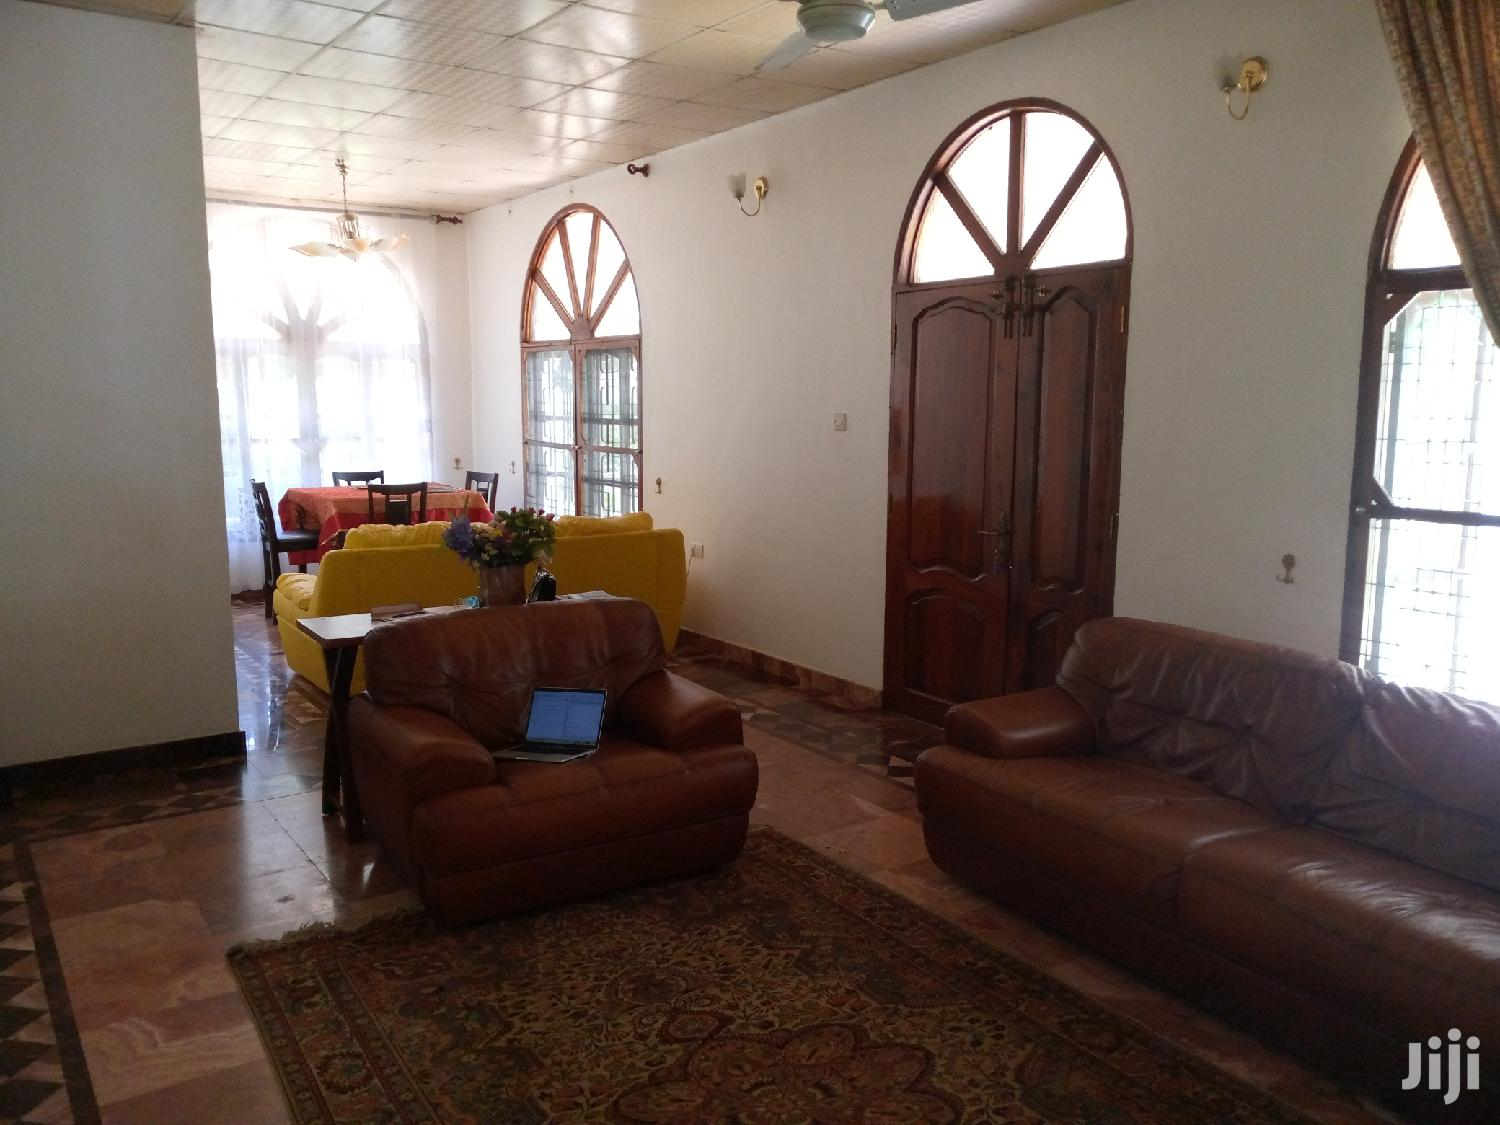 3bedrooms House at Mikocheni | Houses & Apartments For Rent for sale in Kinondoni, Dar es Salaam, Tanzania